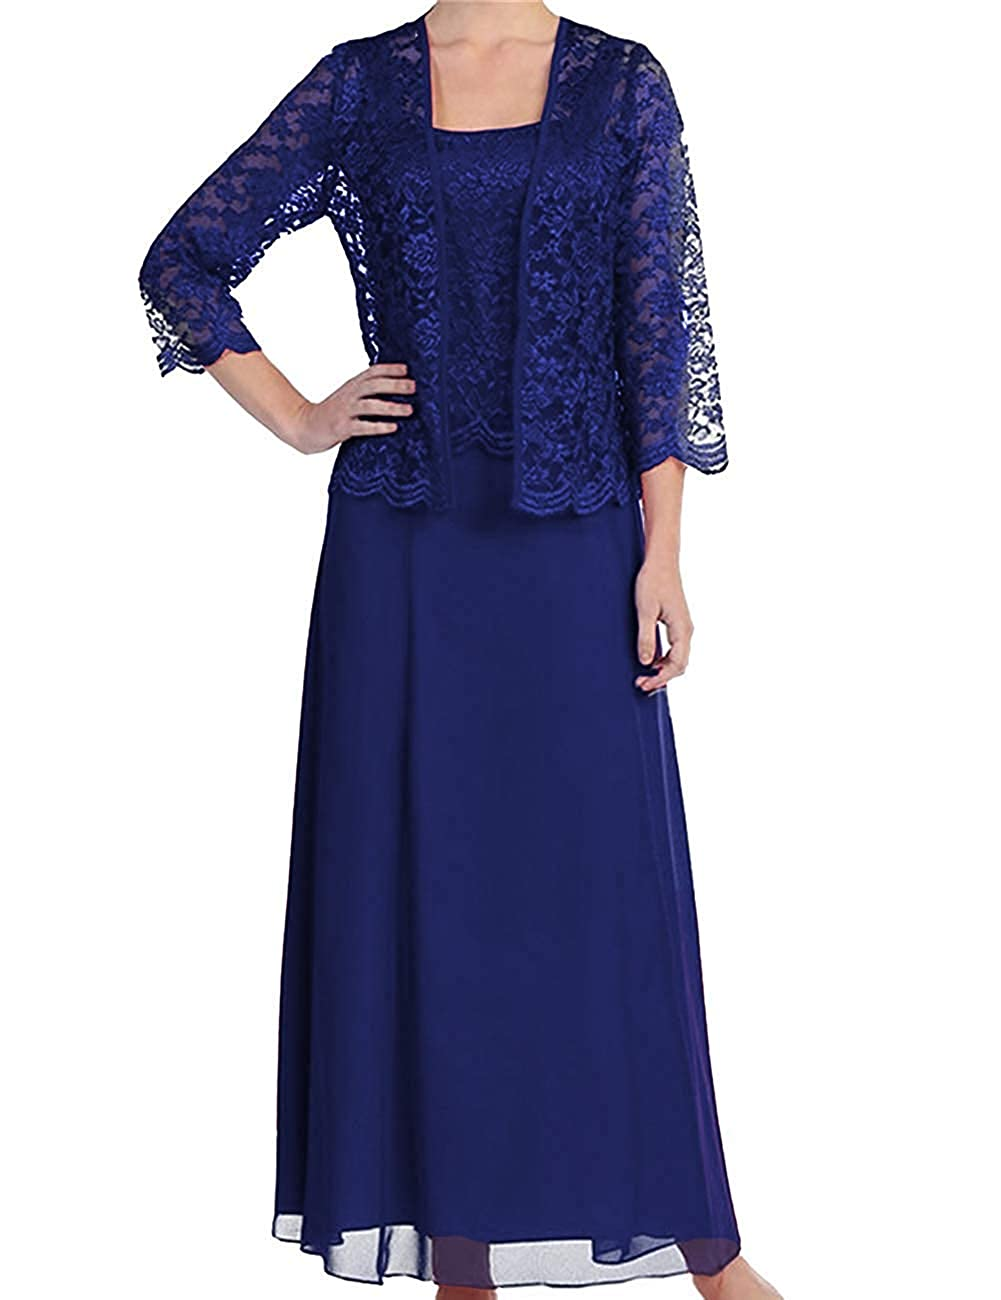 Royal bluee Women's Ankle Length Long Sleeves Mother of The Bride Dresses with Jacket 2 Piece